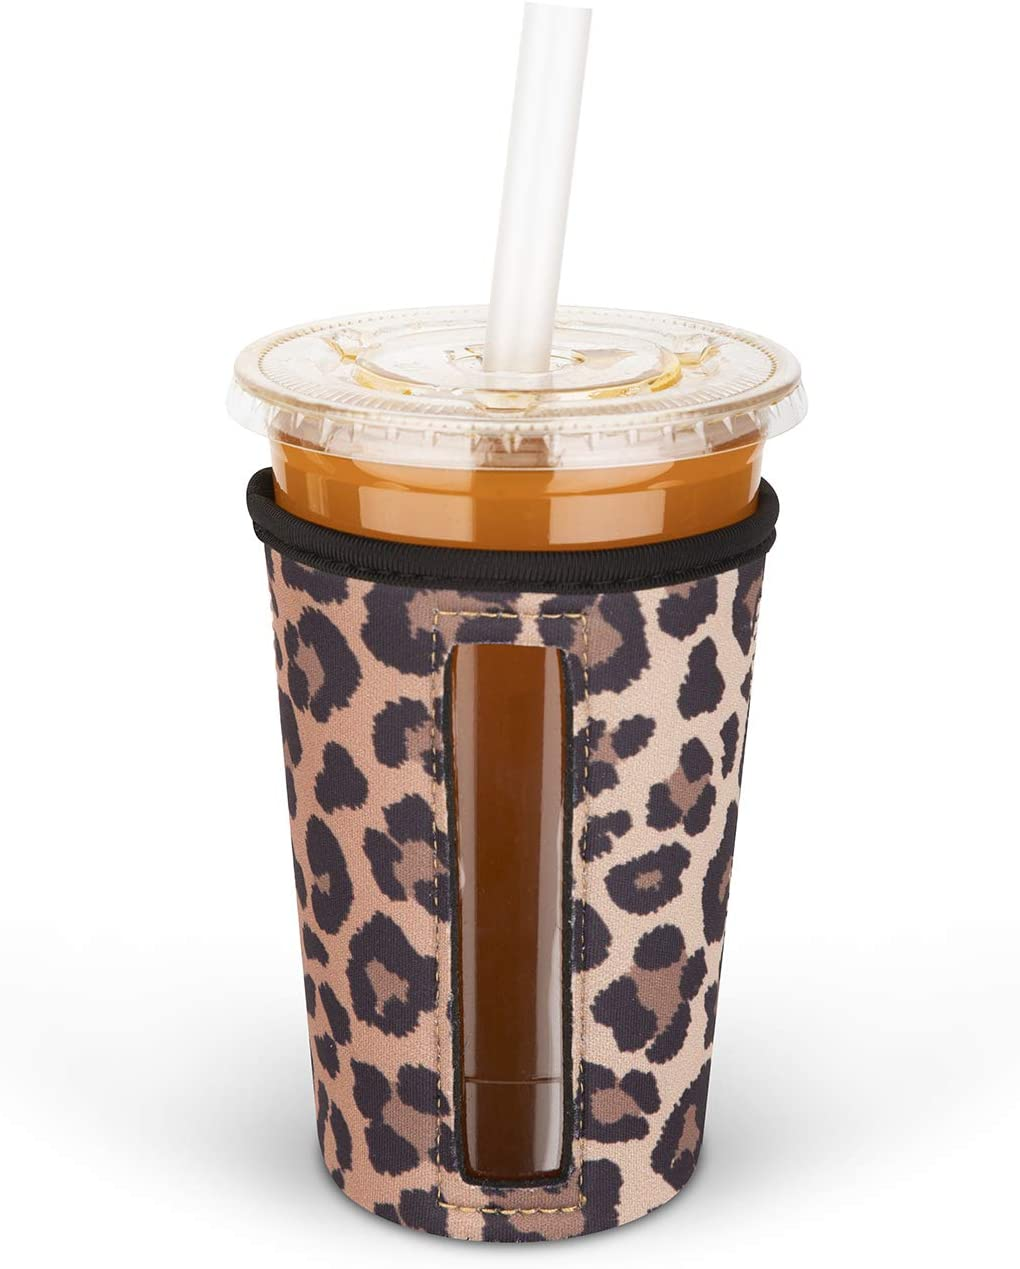 MEETI Reusable Iced Coffee Cup Insulator Sleeve for Cold Beverages, Neoprene Cup Holder Compatible with Starbucks, McDonald's Coffee, Dunkin Donuts, Tim Hortons and More, Medium, Multicolor1